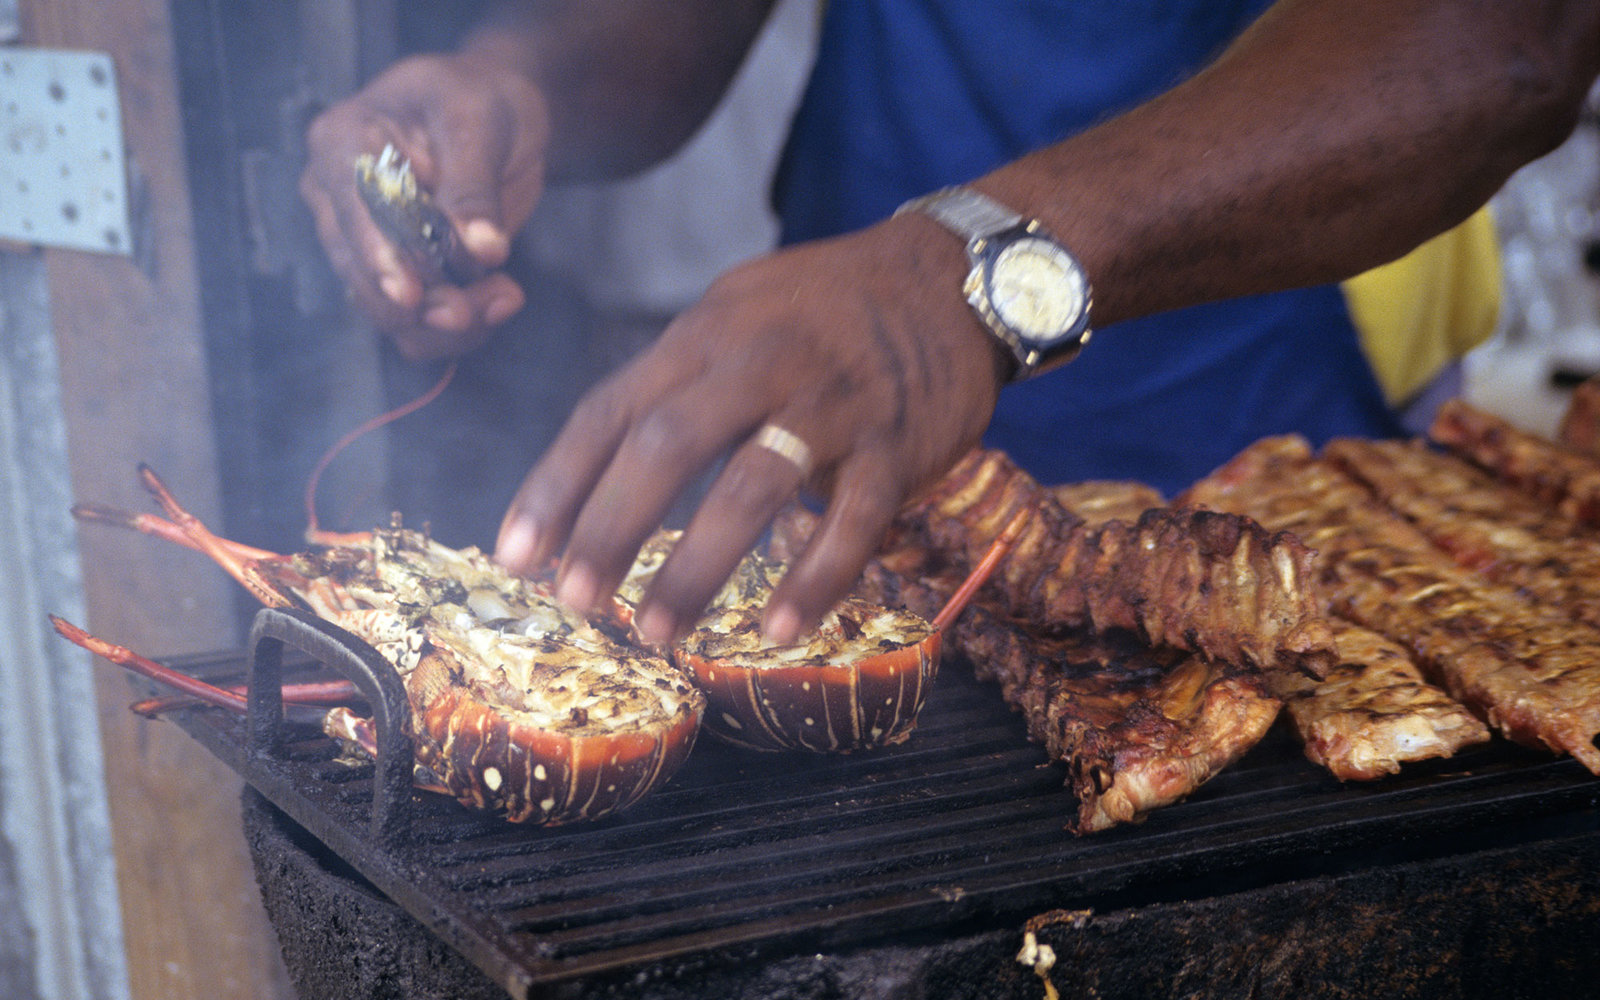 AKAYBB Lobster being cooked on a Barbecue with cooks arms and smoke in Anguilla Caribbean